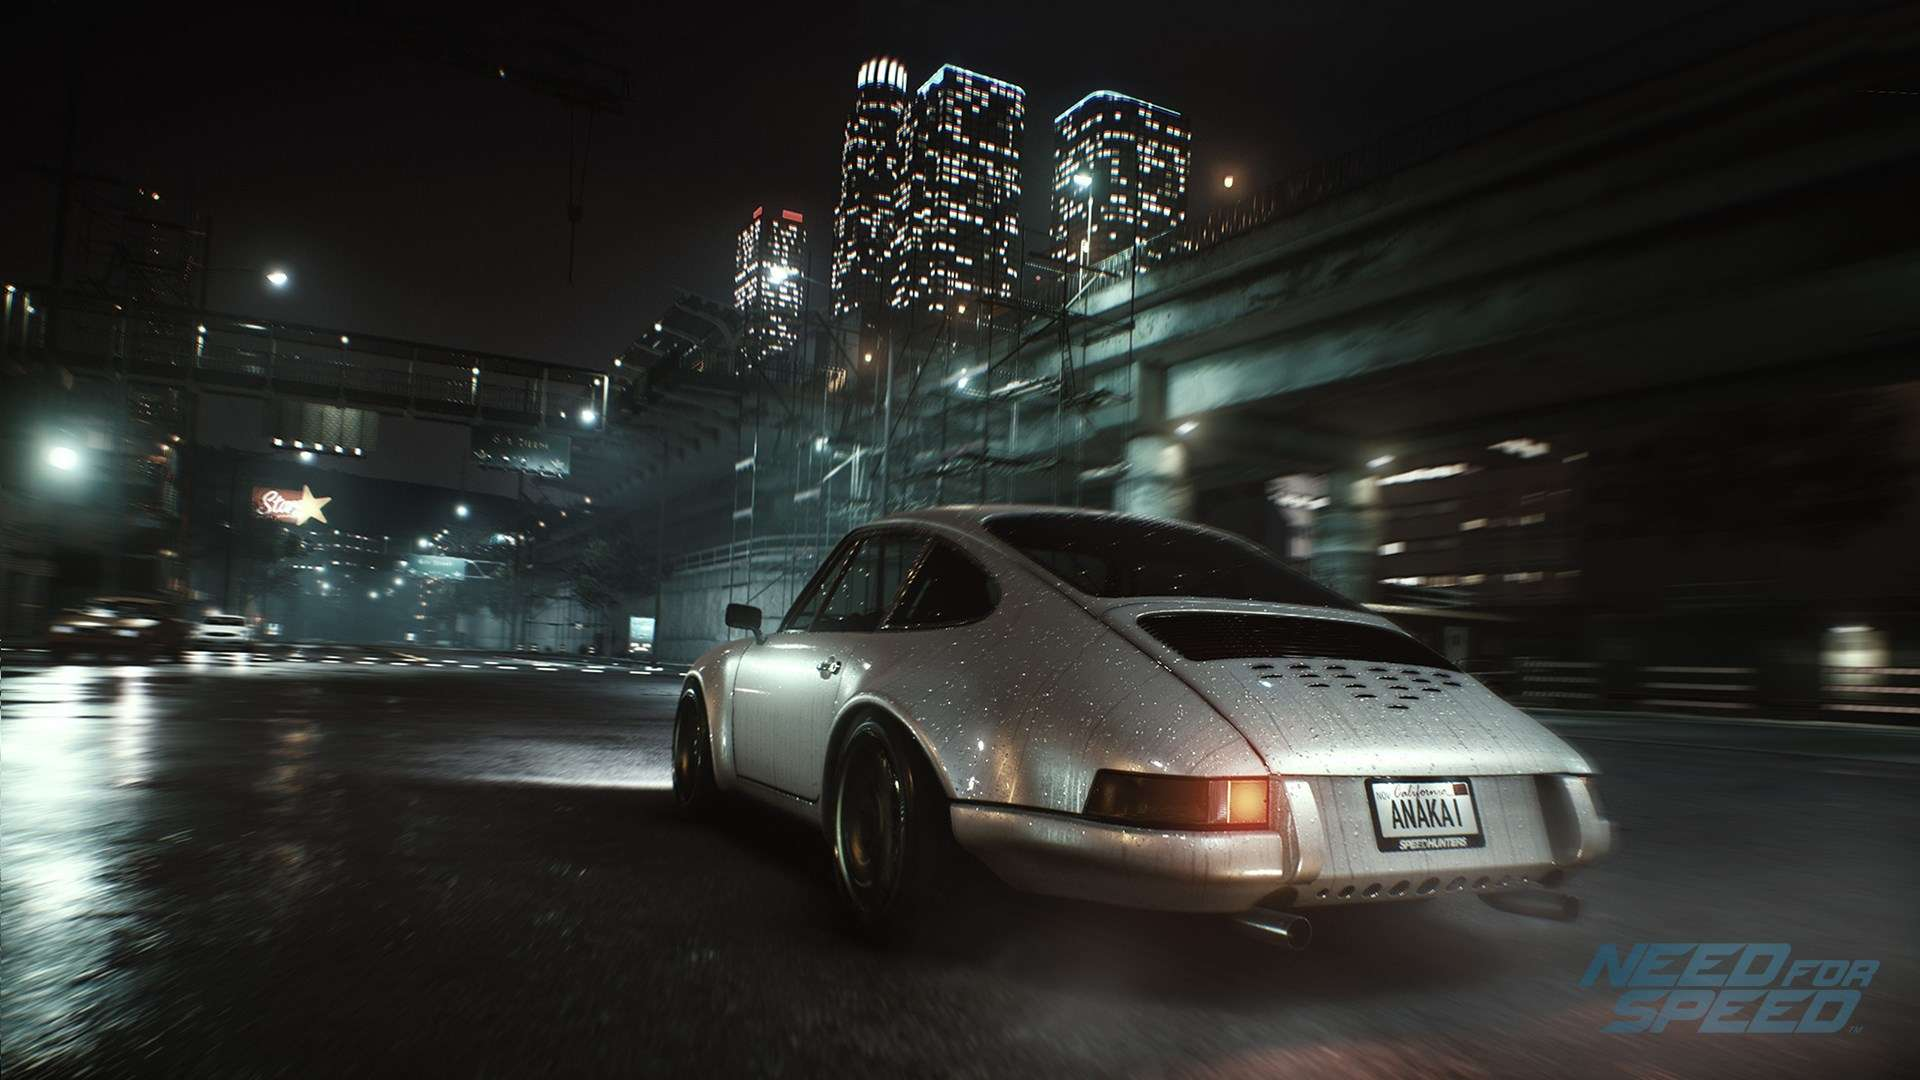 Need for Speed: stasera si va a correre! 11